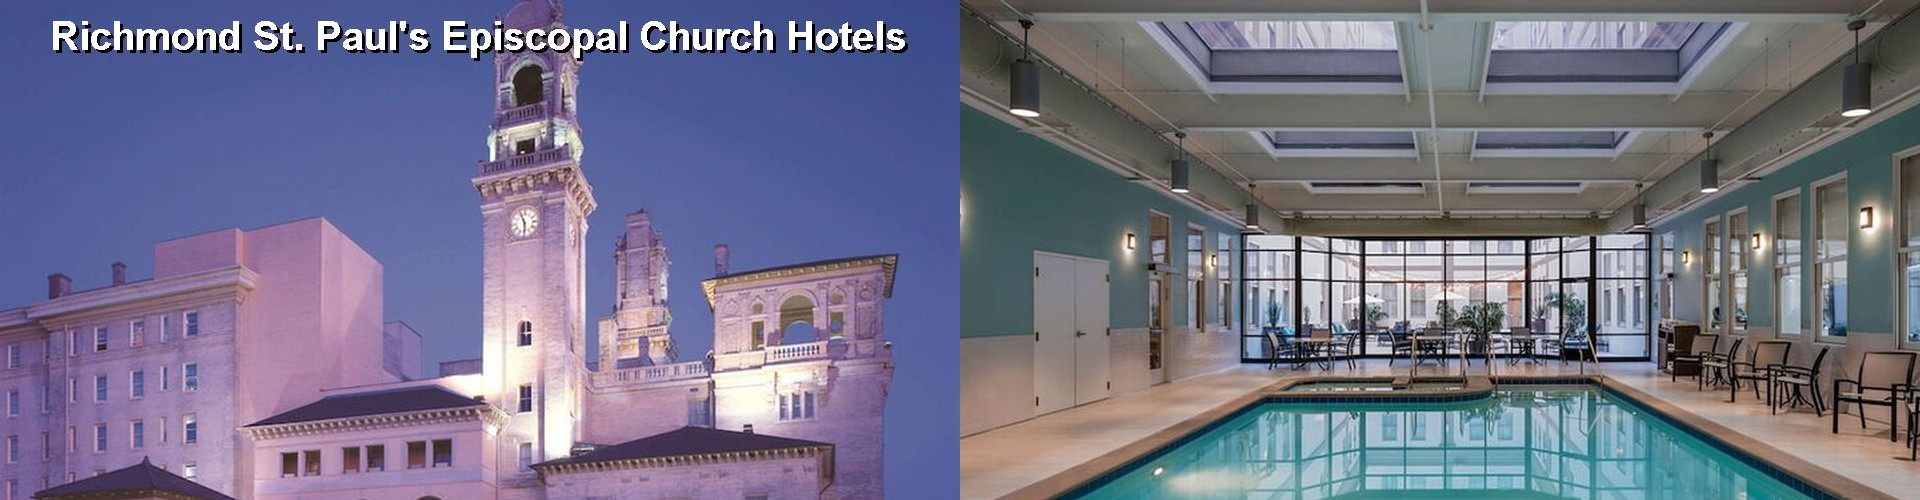 5 Best Hotels near Richmond St. Paul's Episcopal Church